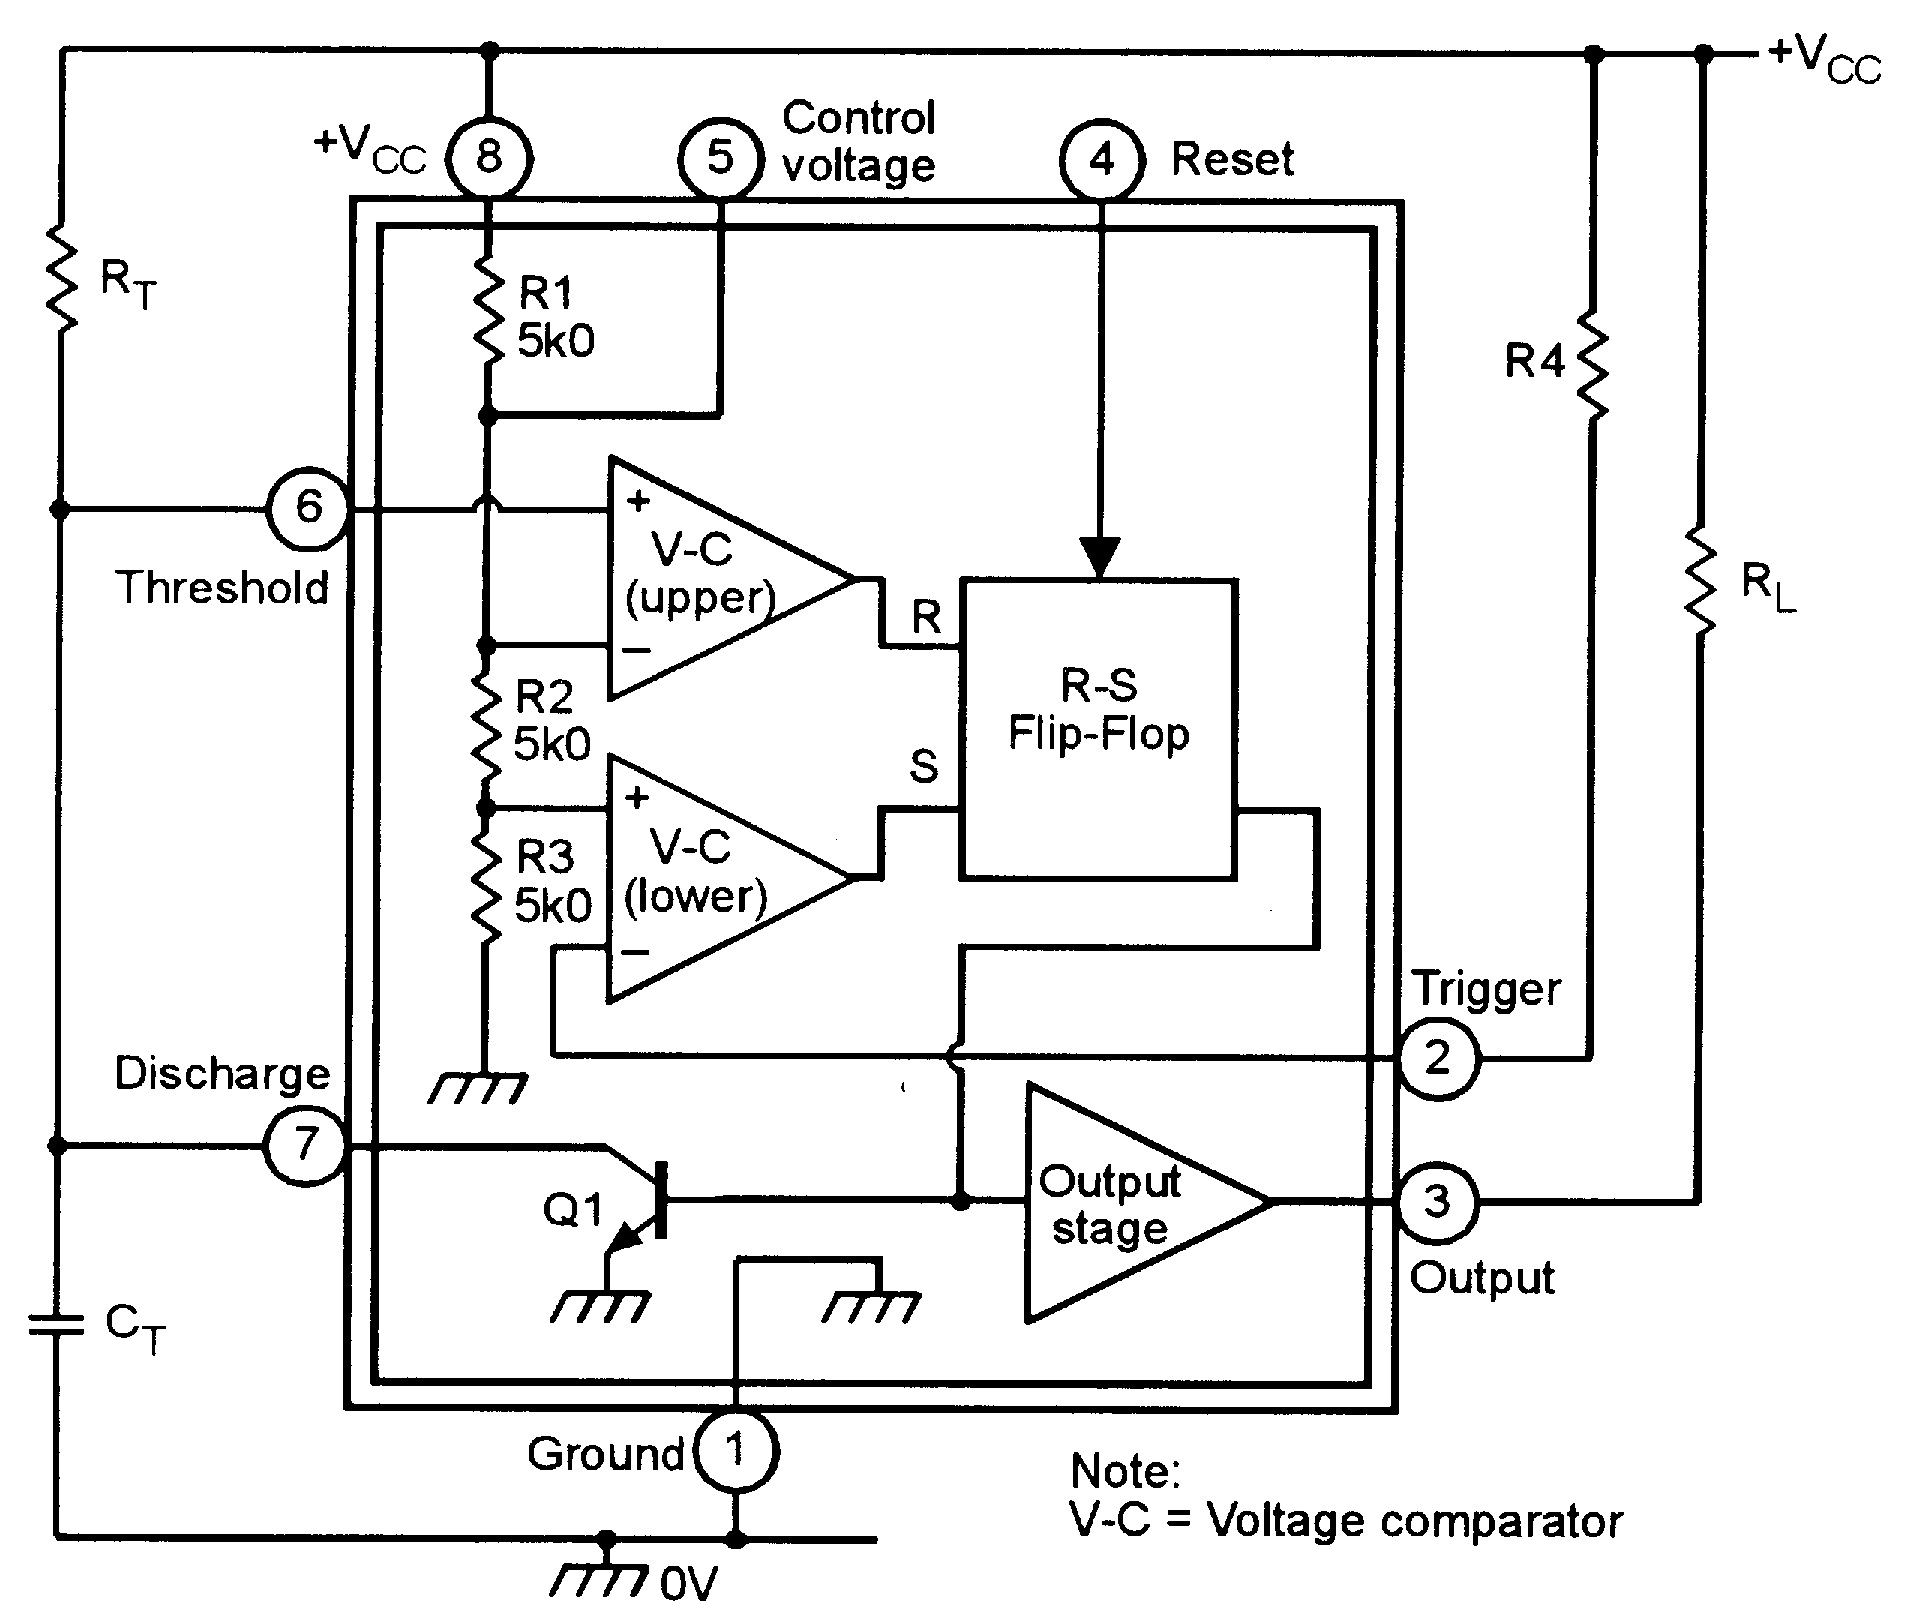 555 timer wiring diagram 3 phase motor star delta monostable circuits nuts and volts magazine